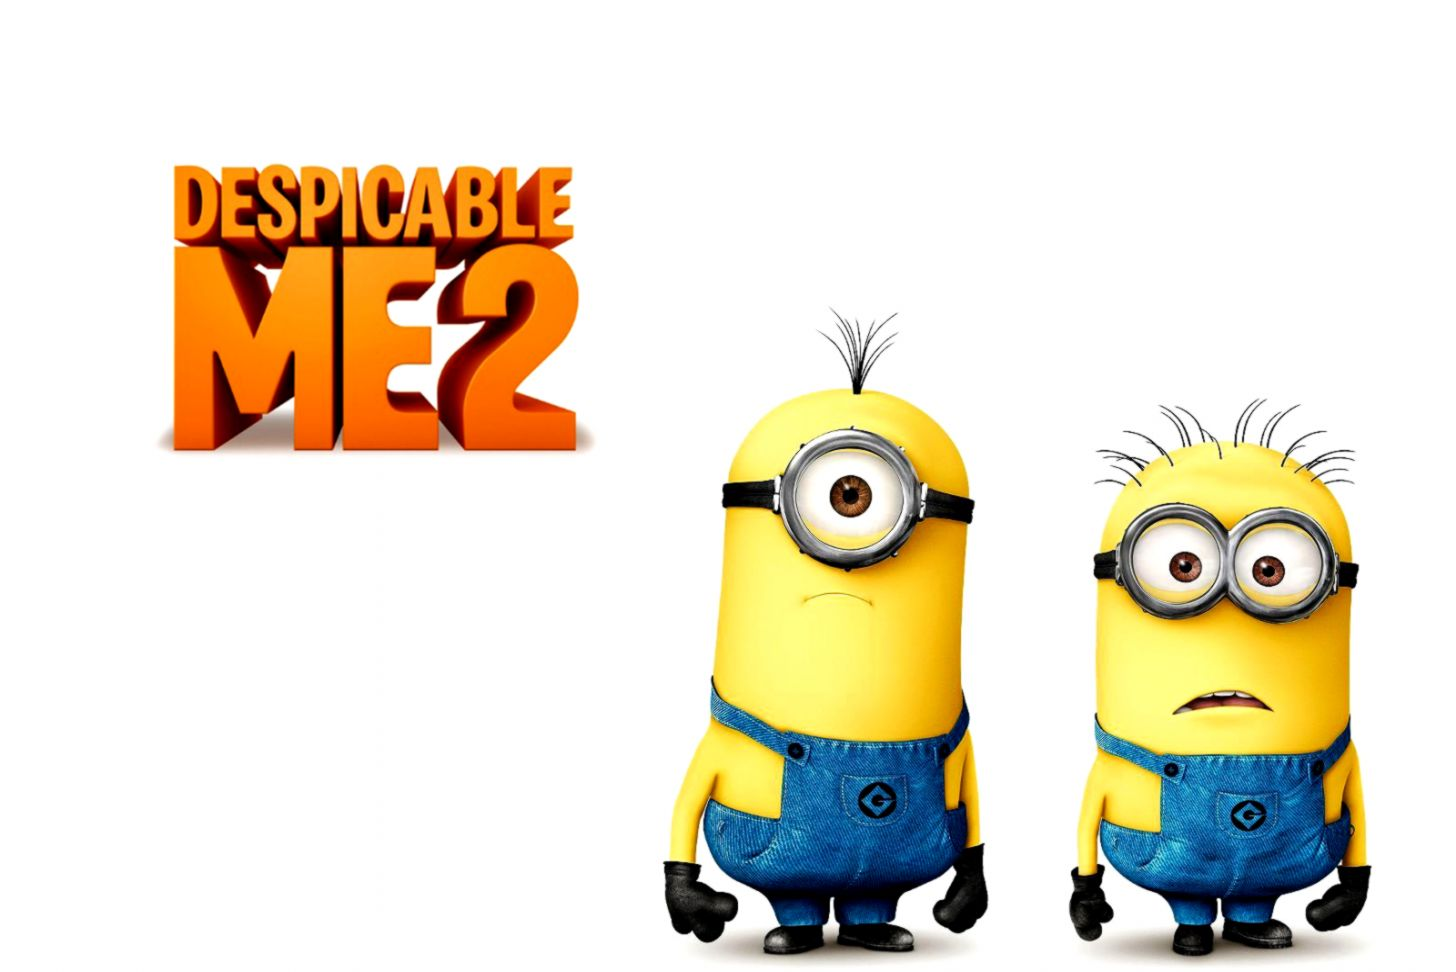 Despicable me 2 wide hd minions all hd wallpapers gallery view original size voltagebd Gallery